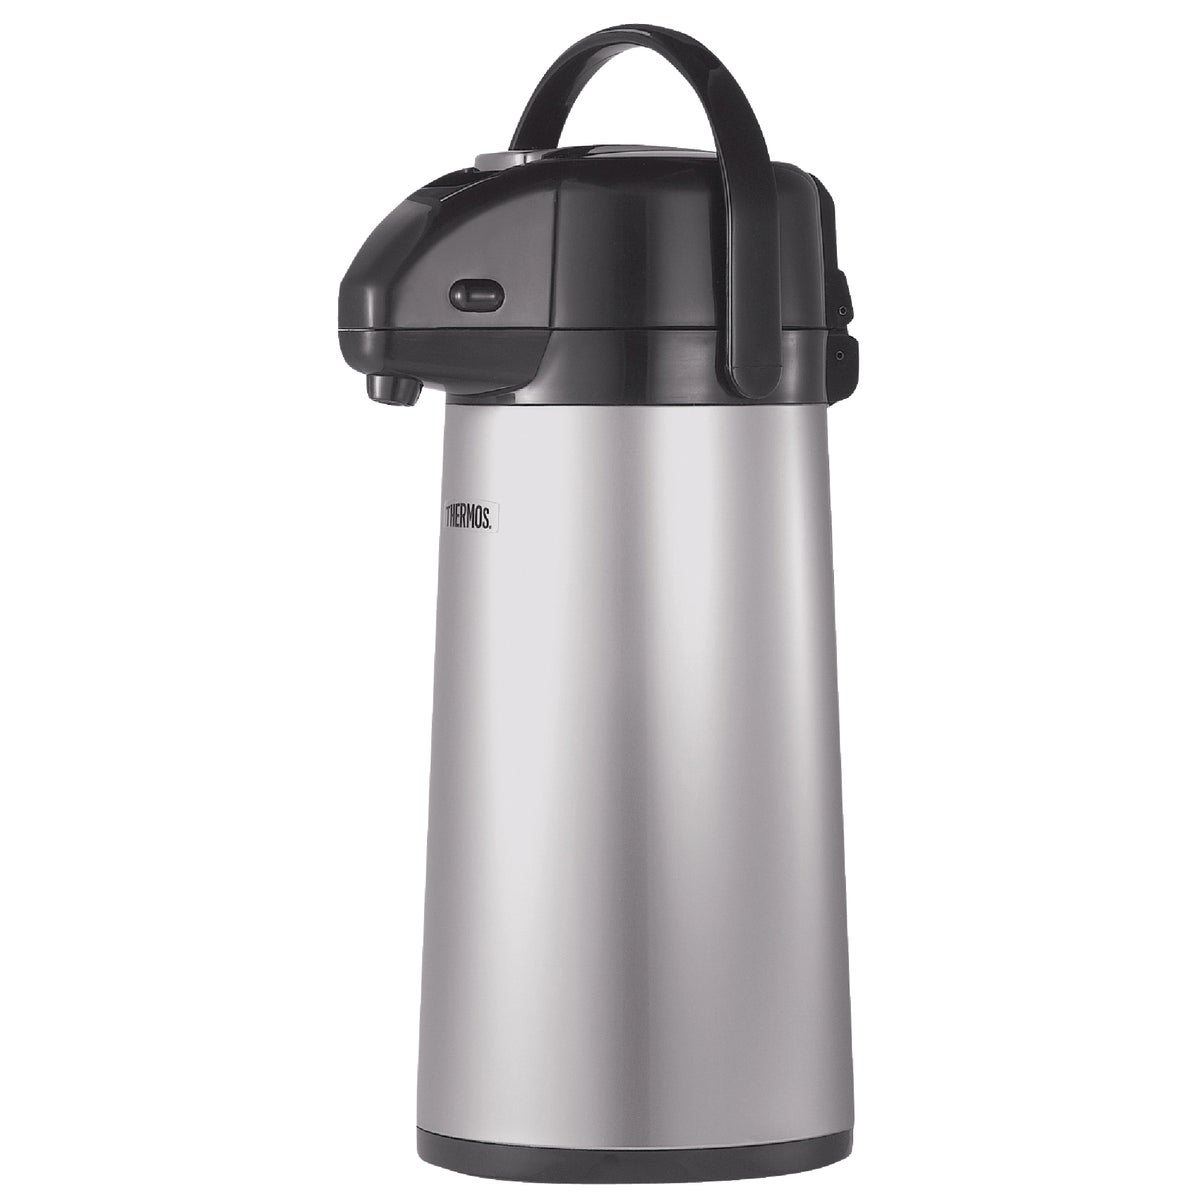 2QT BEVERAGE DISPENSER - PP1920TR12 by Thermos Co